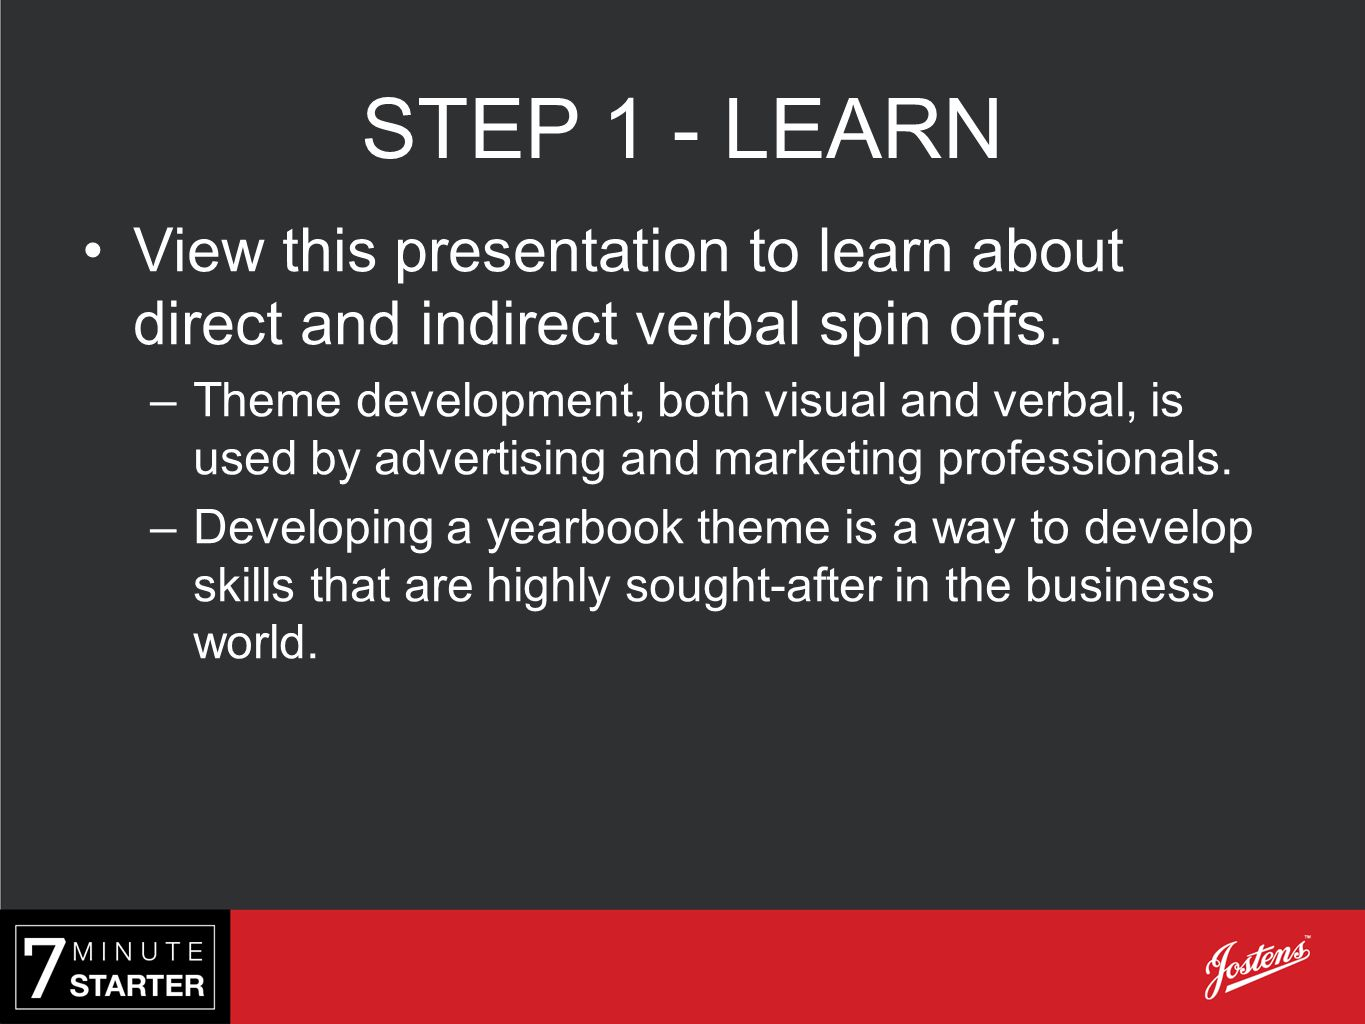 STEP 1 - LEARN View this presentation to learn about direct and indirect verbal spin offs.